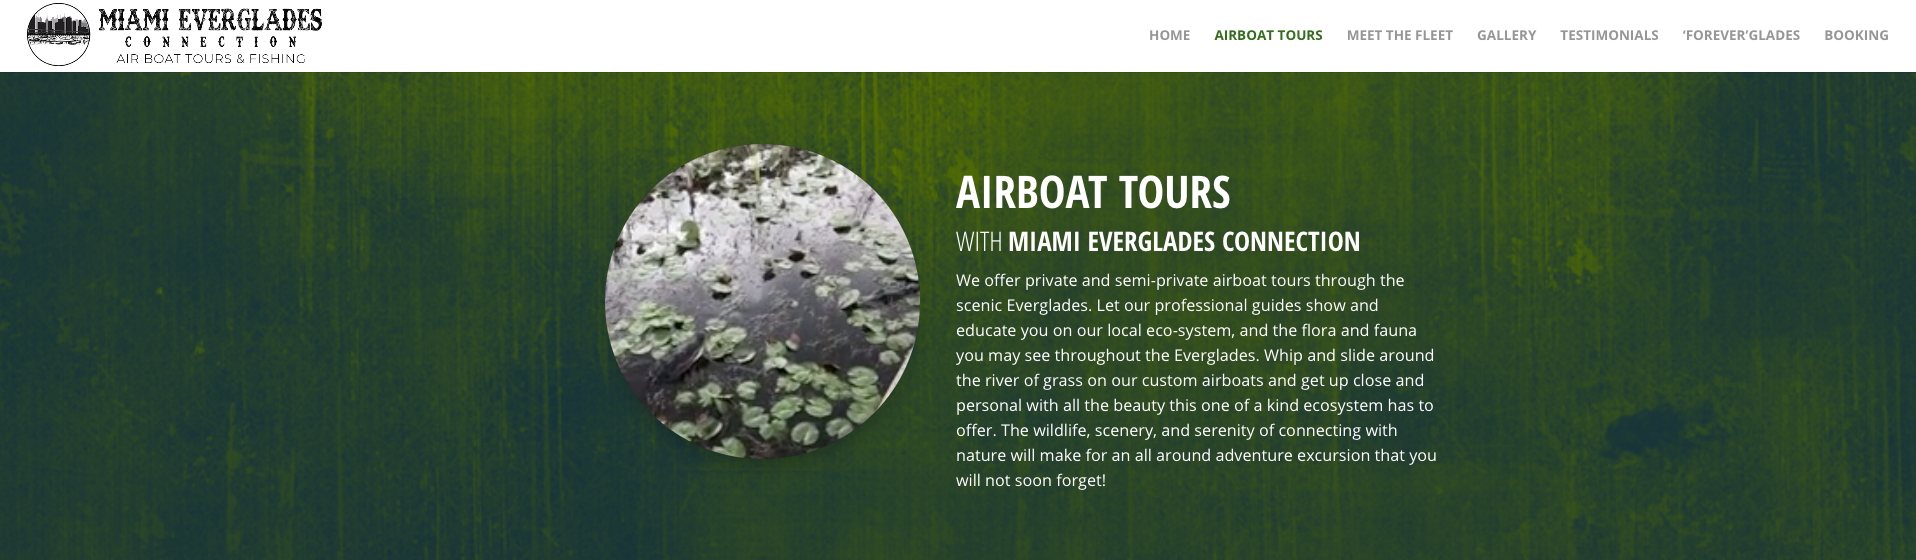 Miami Everglades Connection Website Header Screenshot